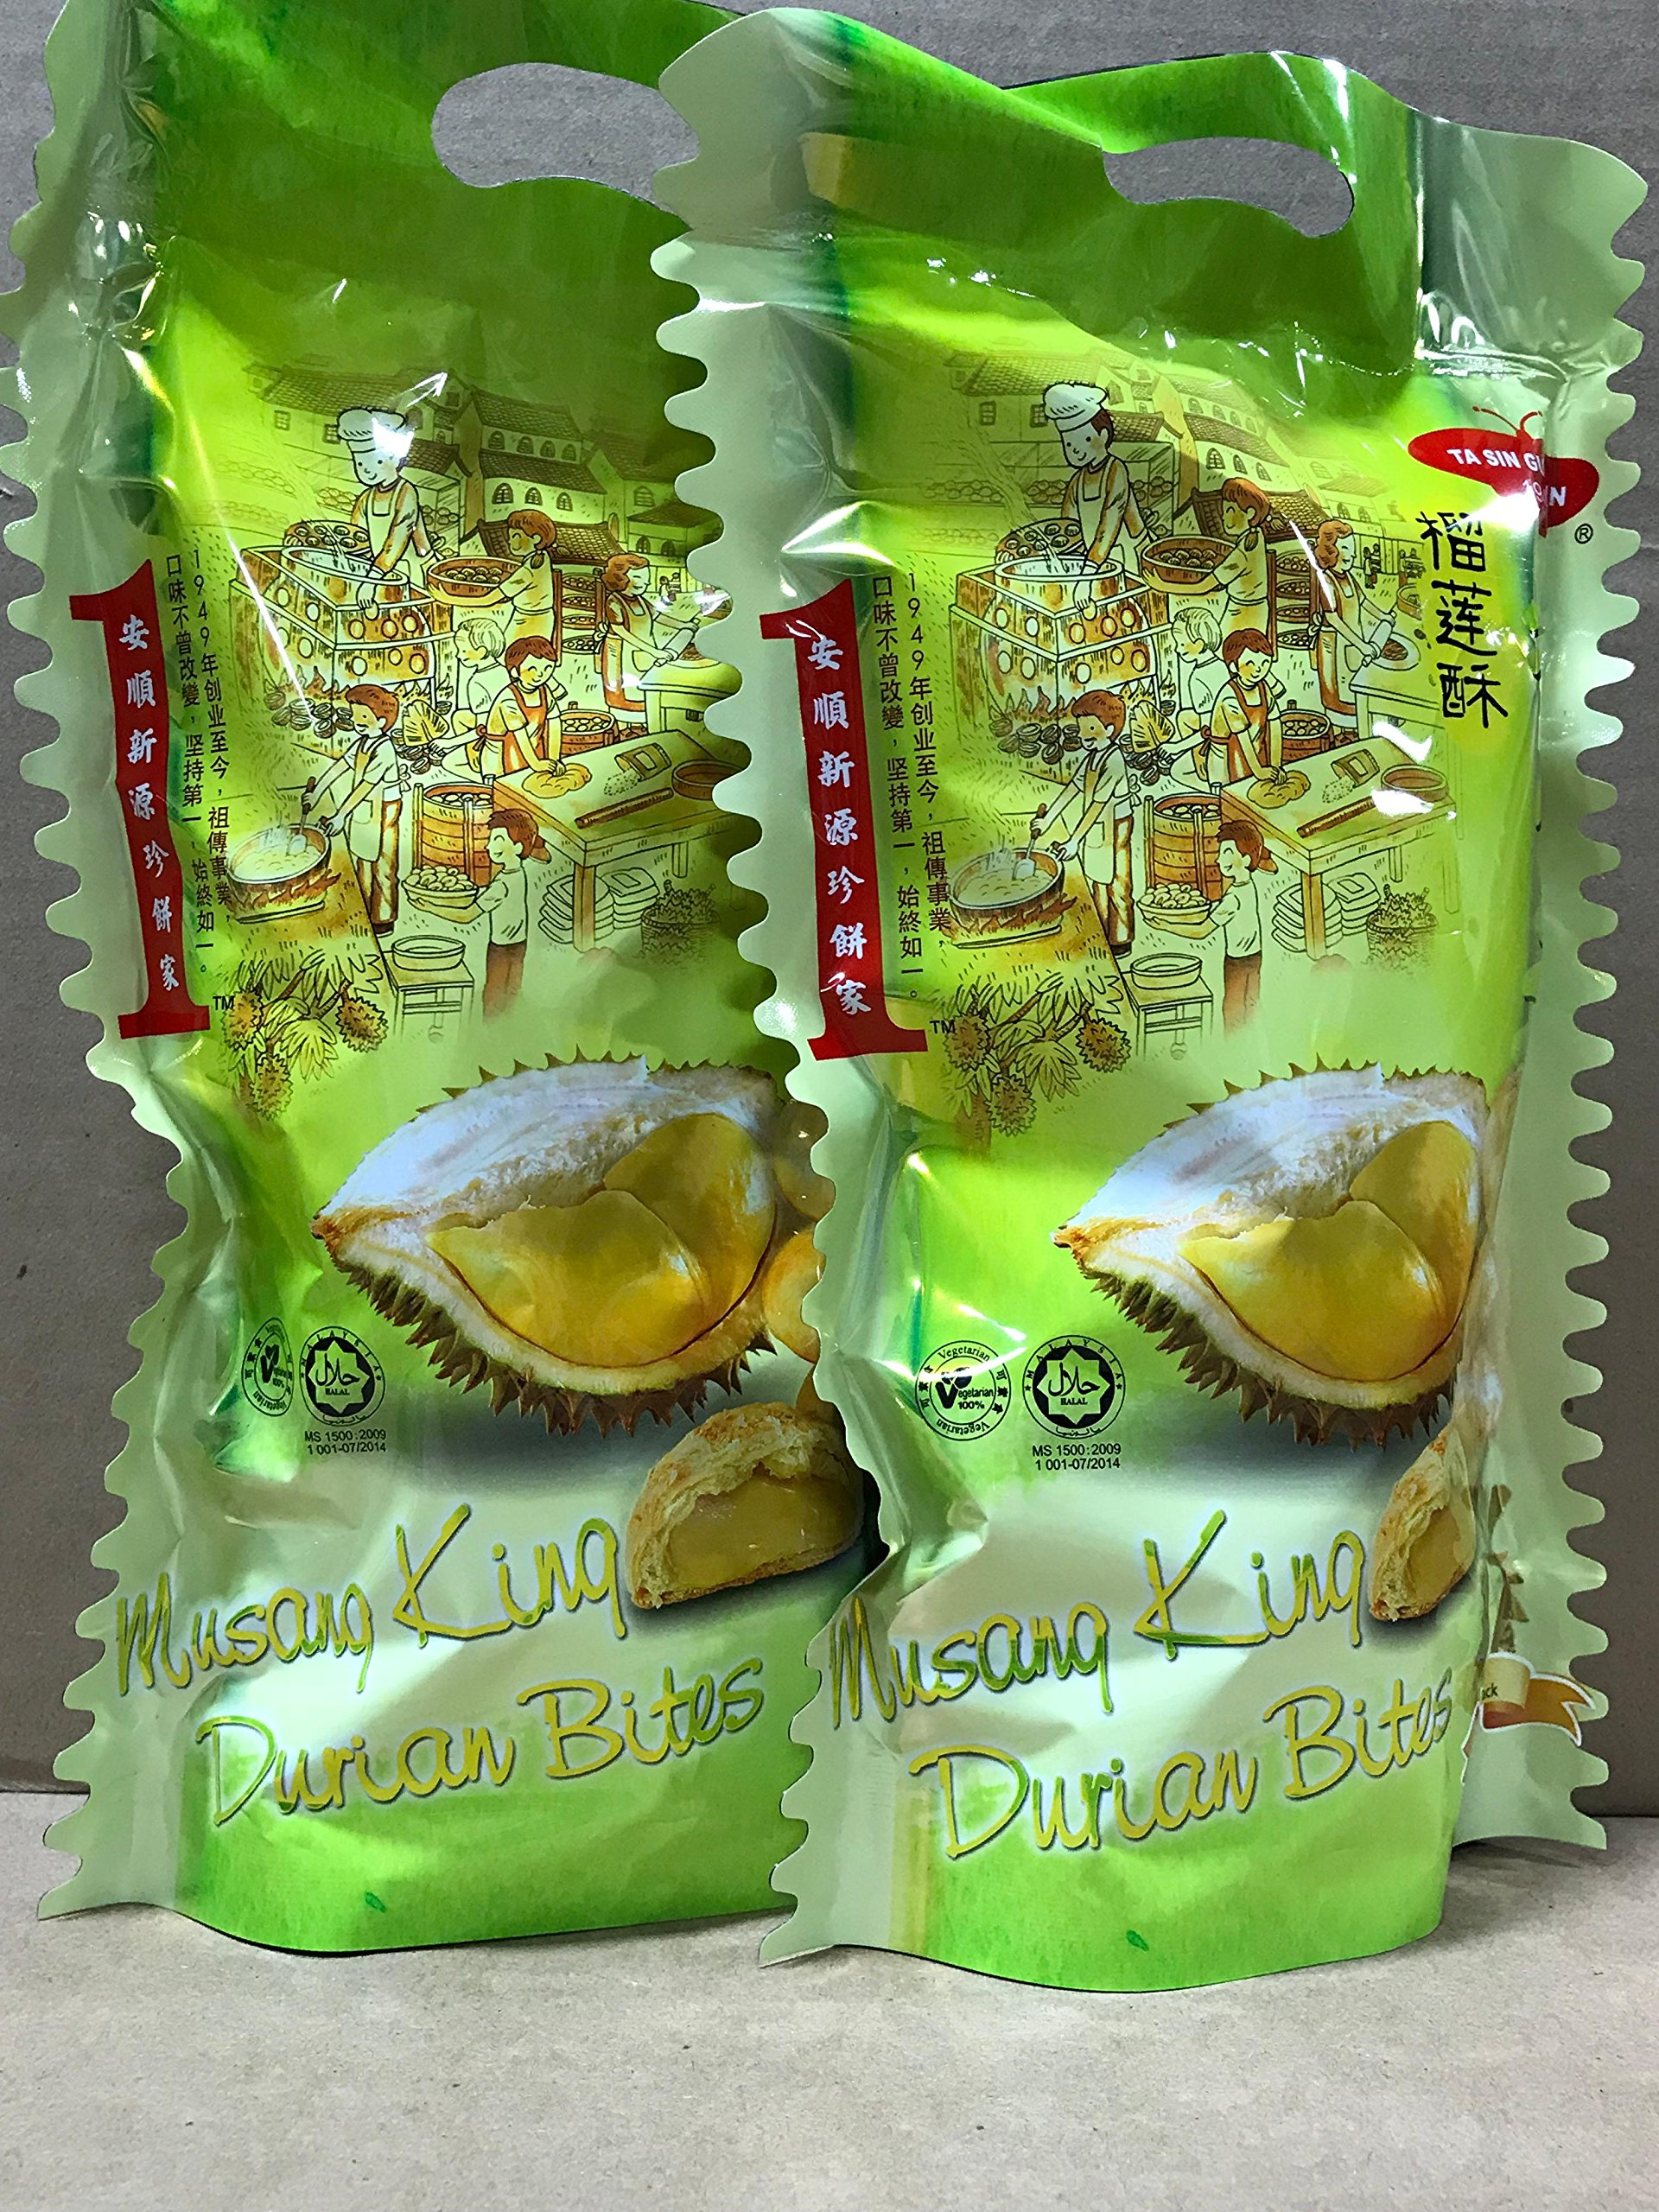 KC Commerce MUSANG KING Durian Bites 6 pcs/ bag Pack of 2 by KC Commerce (Image #4)